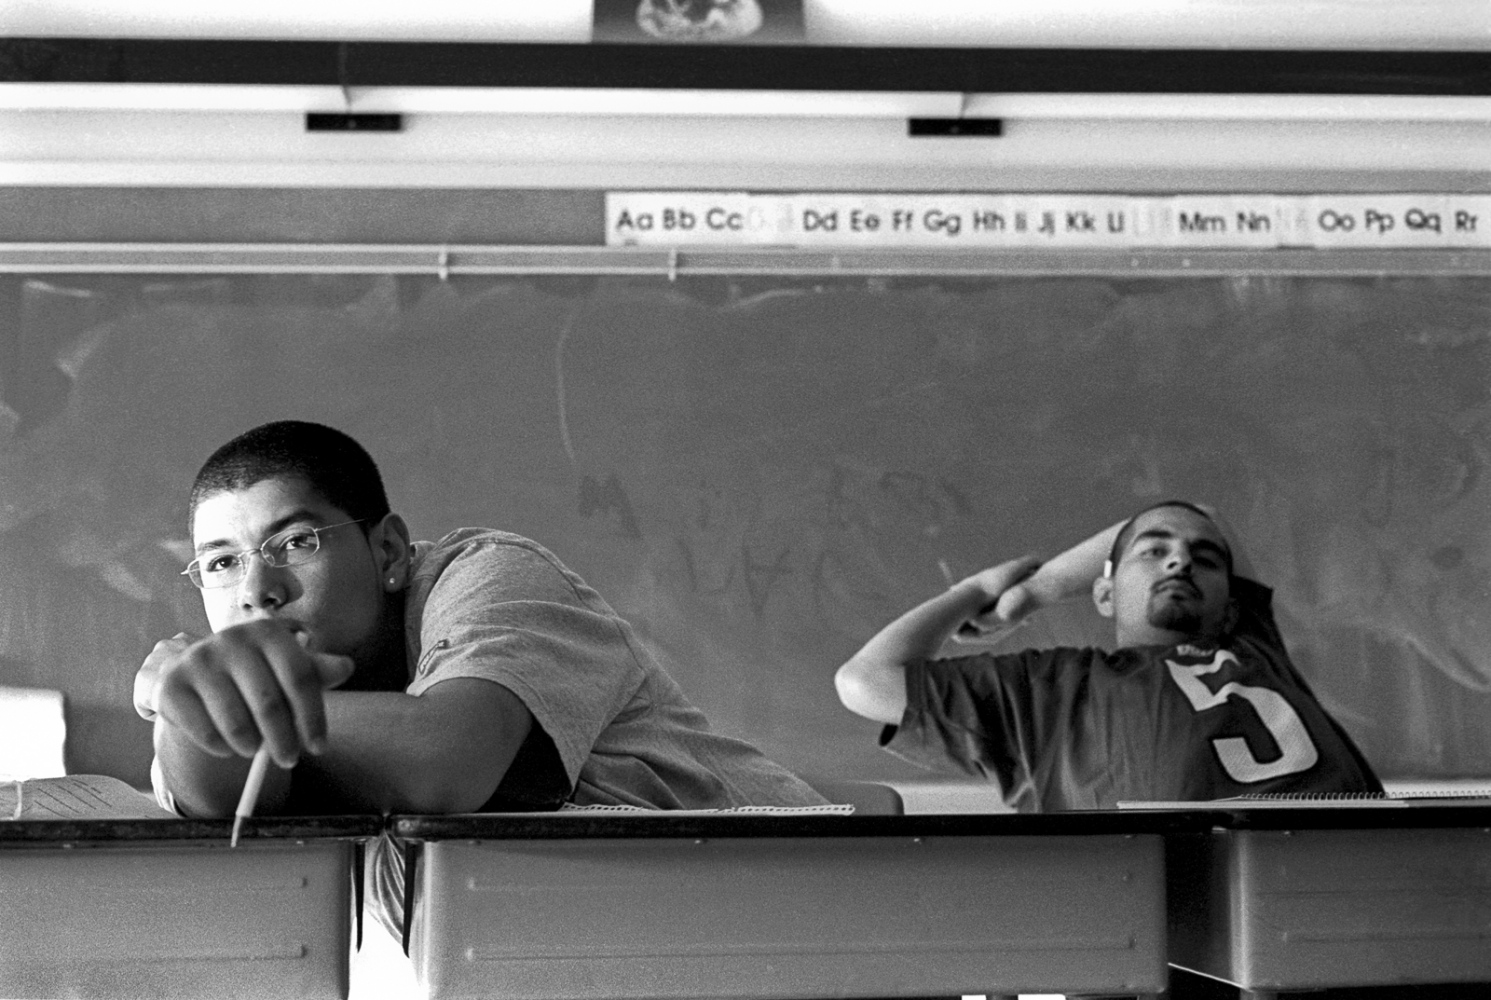 Salvador and Joe in Social Studies class at Second Chance High School. Salvador was arrested for shooting someone. Joe finished school and found work in construction.